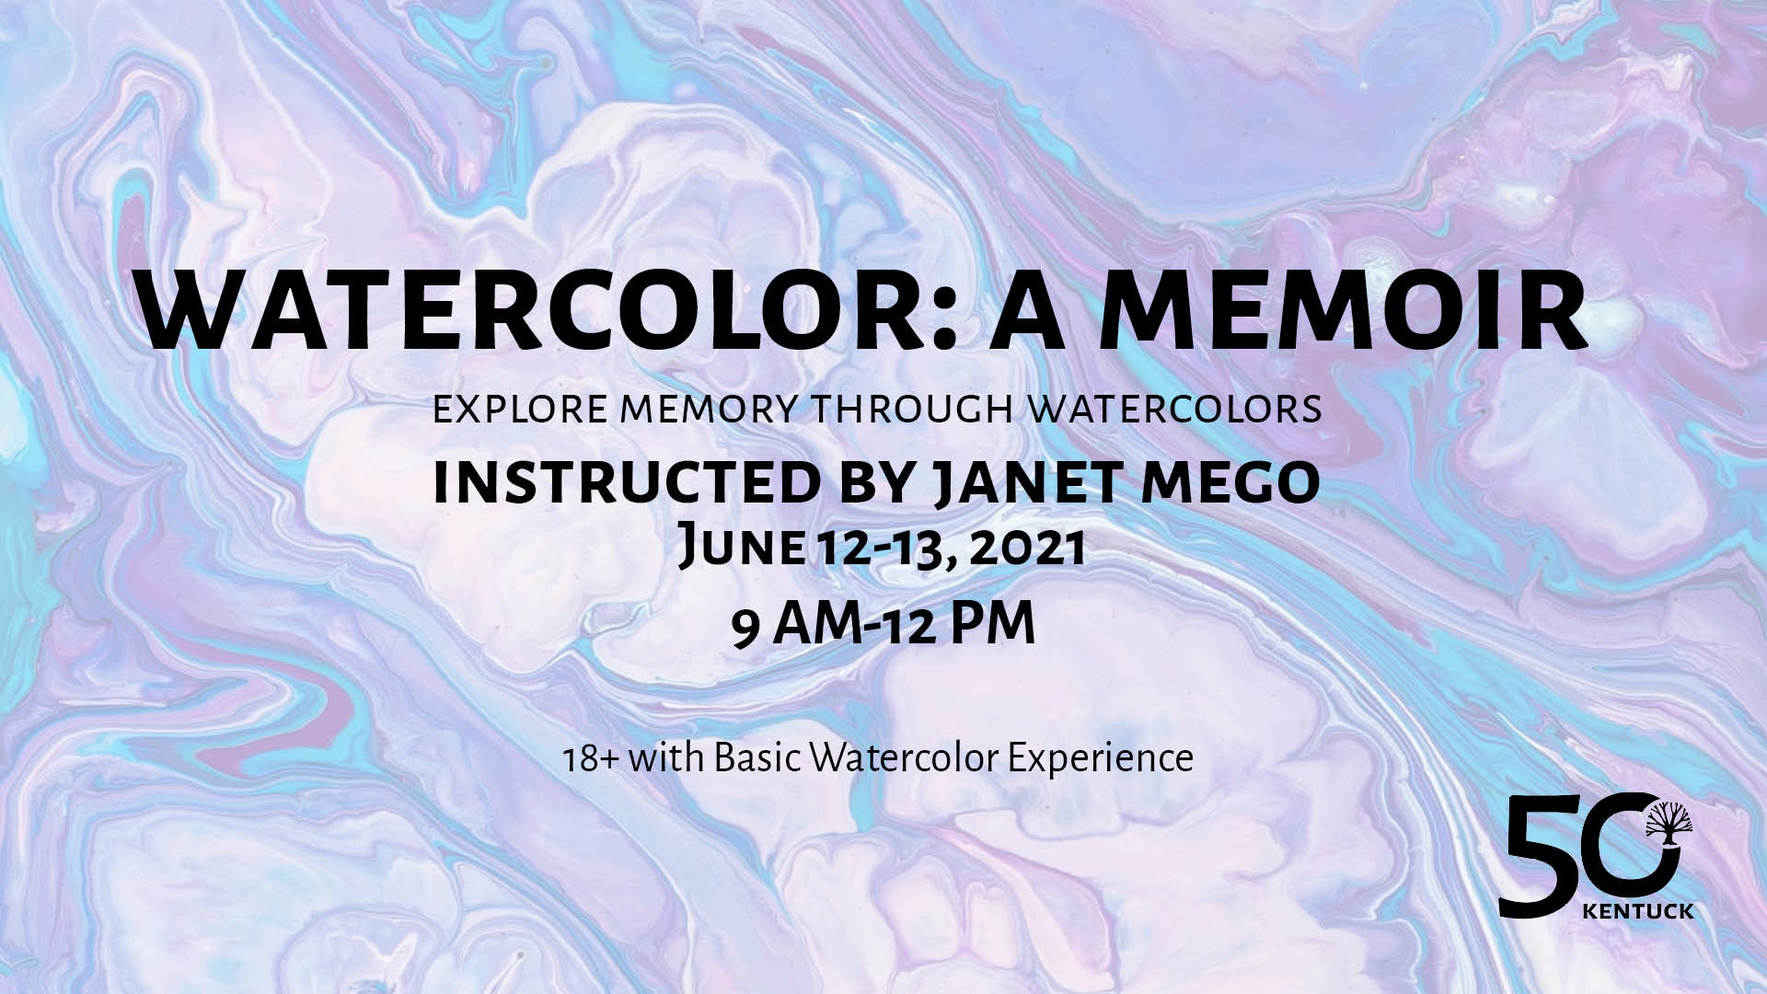 Watercolor: A Memoir with Janet Mego image